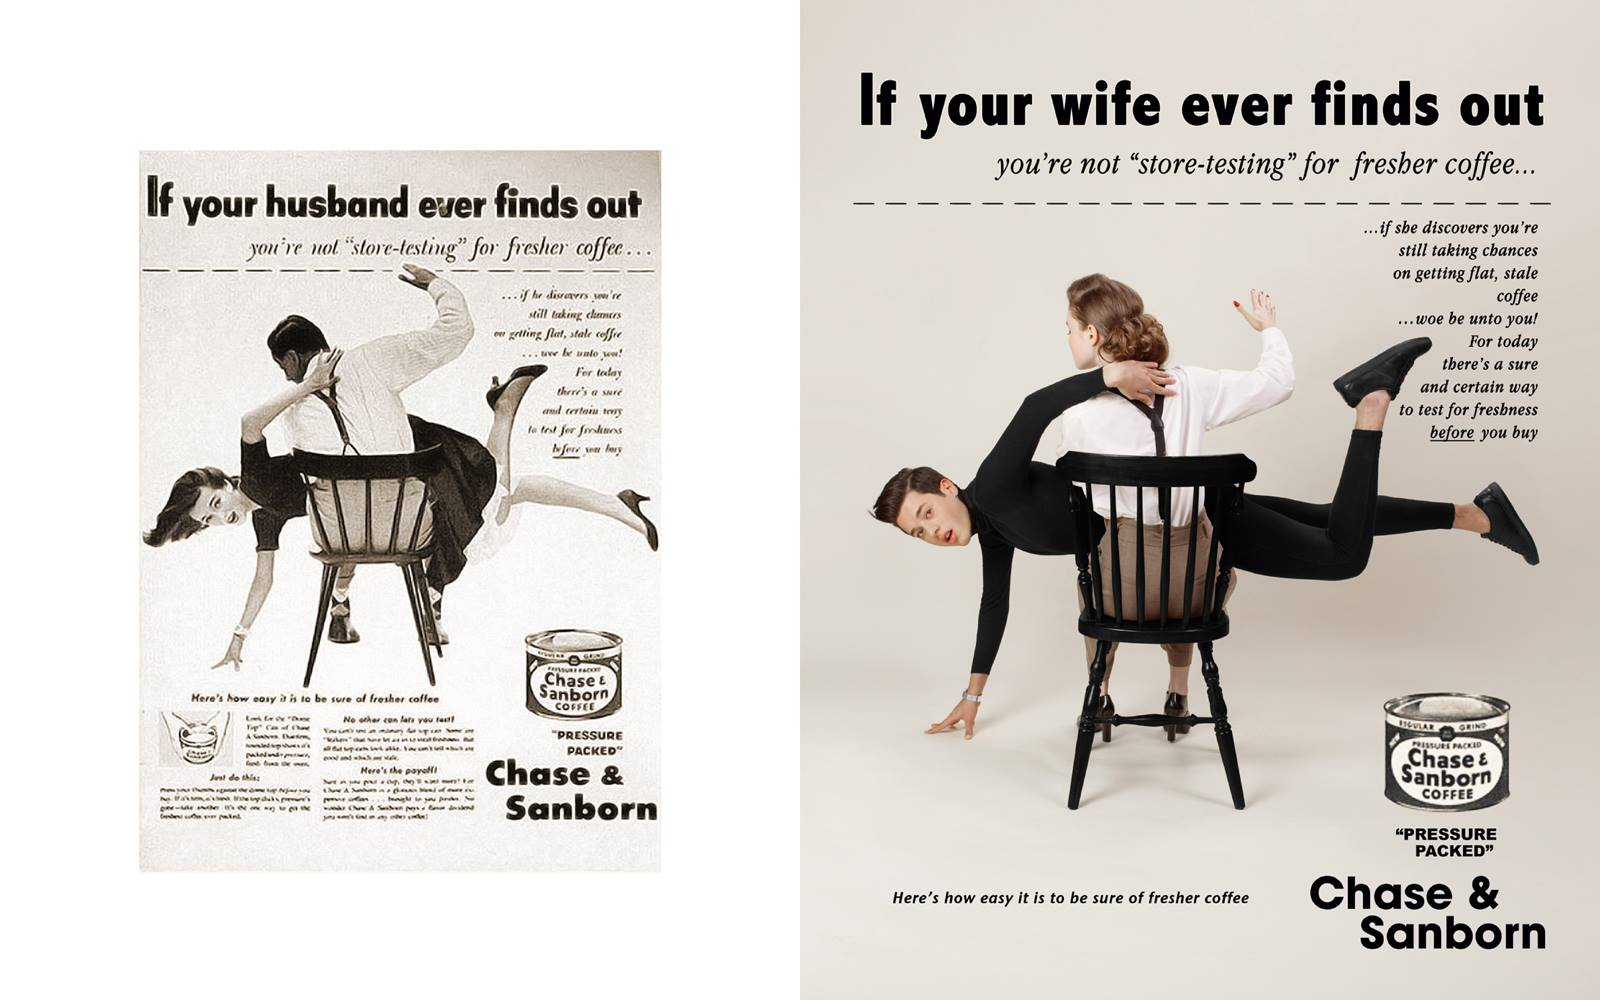 gender roles in advertisements Gender advertisement refers to the images in advertising that depict stereotypical gender roles and displays gender displays are used heavily in advertising in order to establish the role of one gender in relation with the other, and some scholars argue that advertisers are obsessed with gender [1].